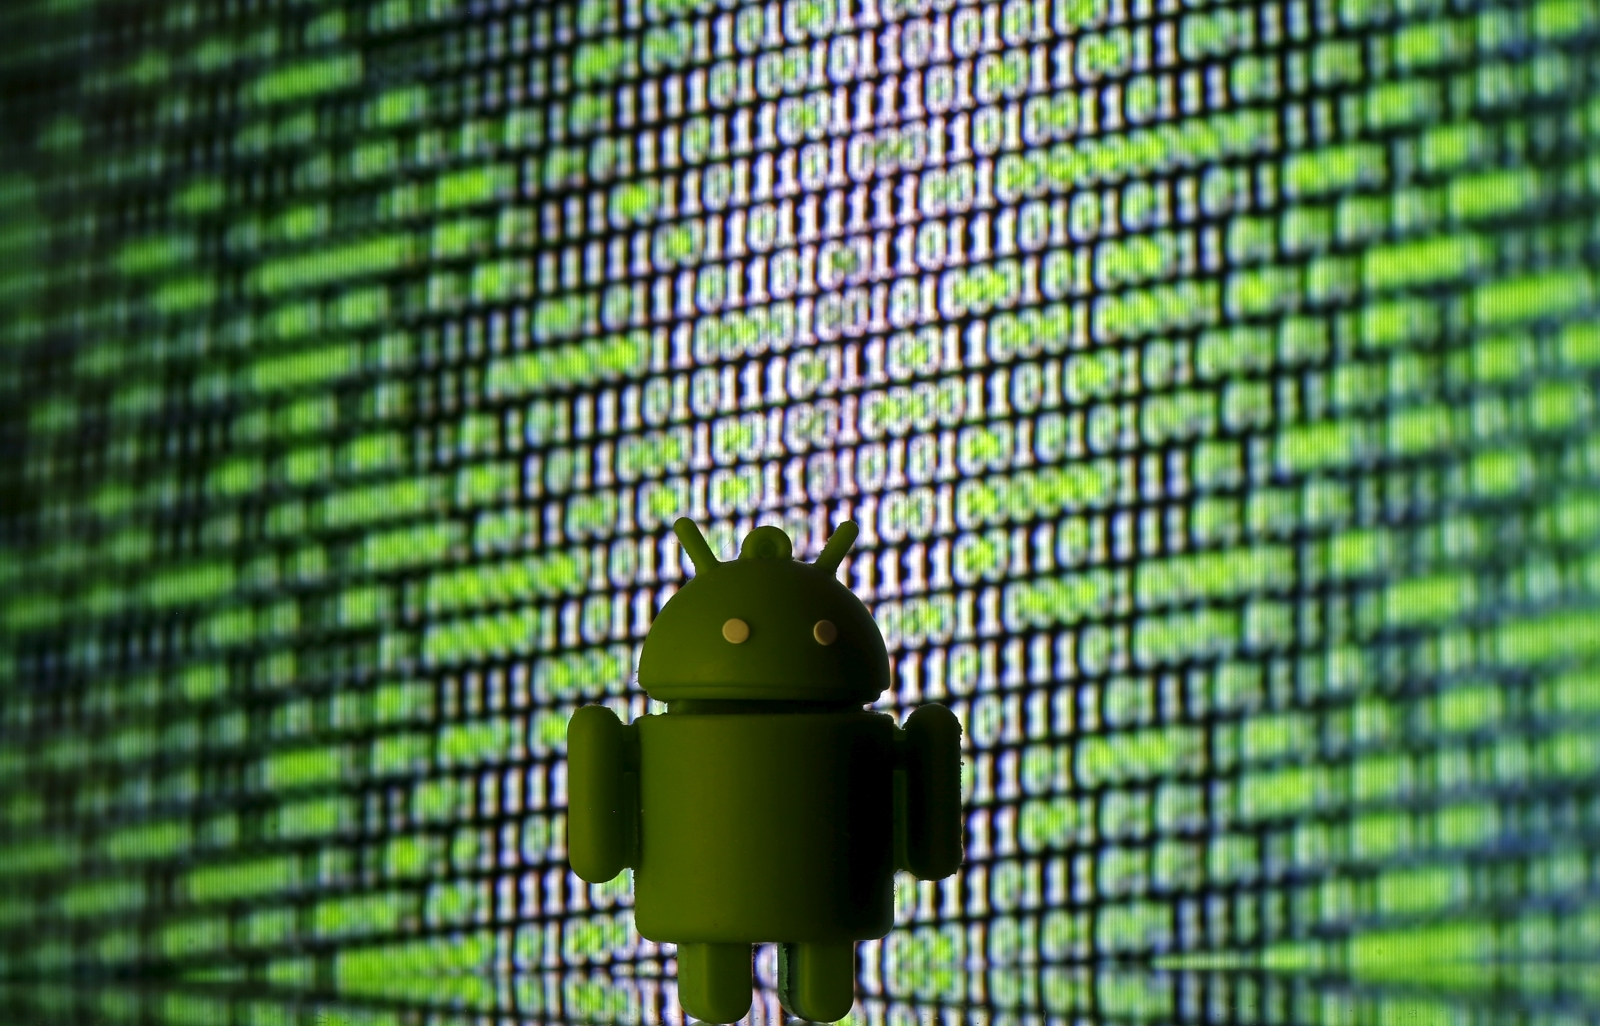 Android Trojan targeting over 90 major banks across US and Europe